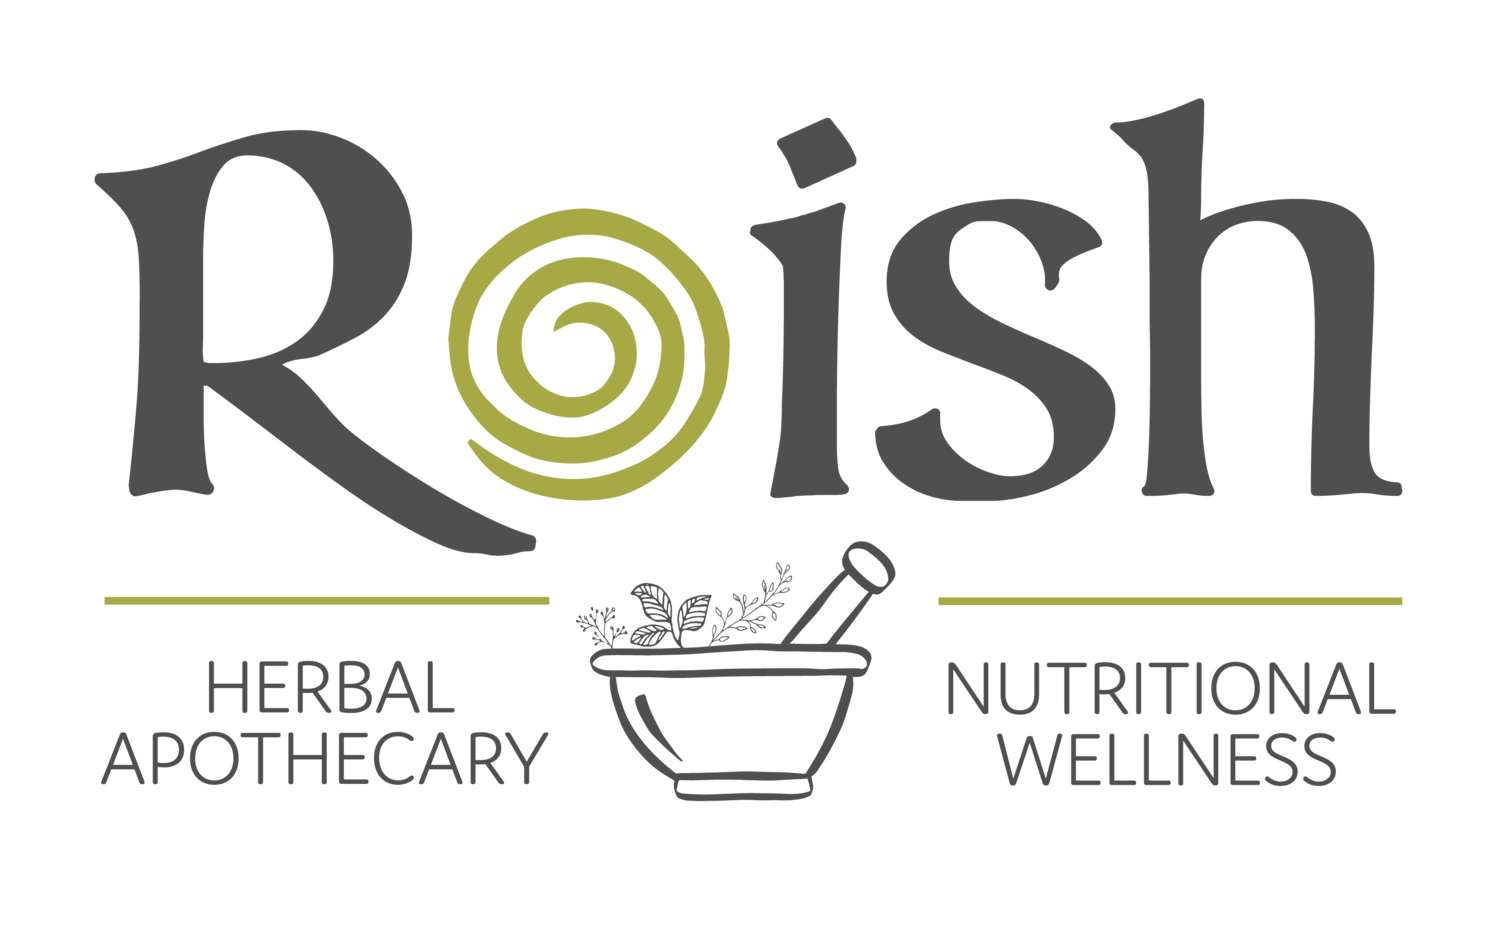 ROISH Herbal Apothecary & Nutritional Wellness